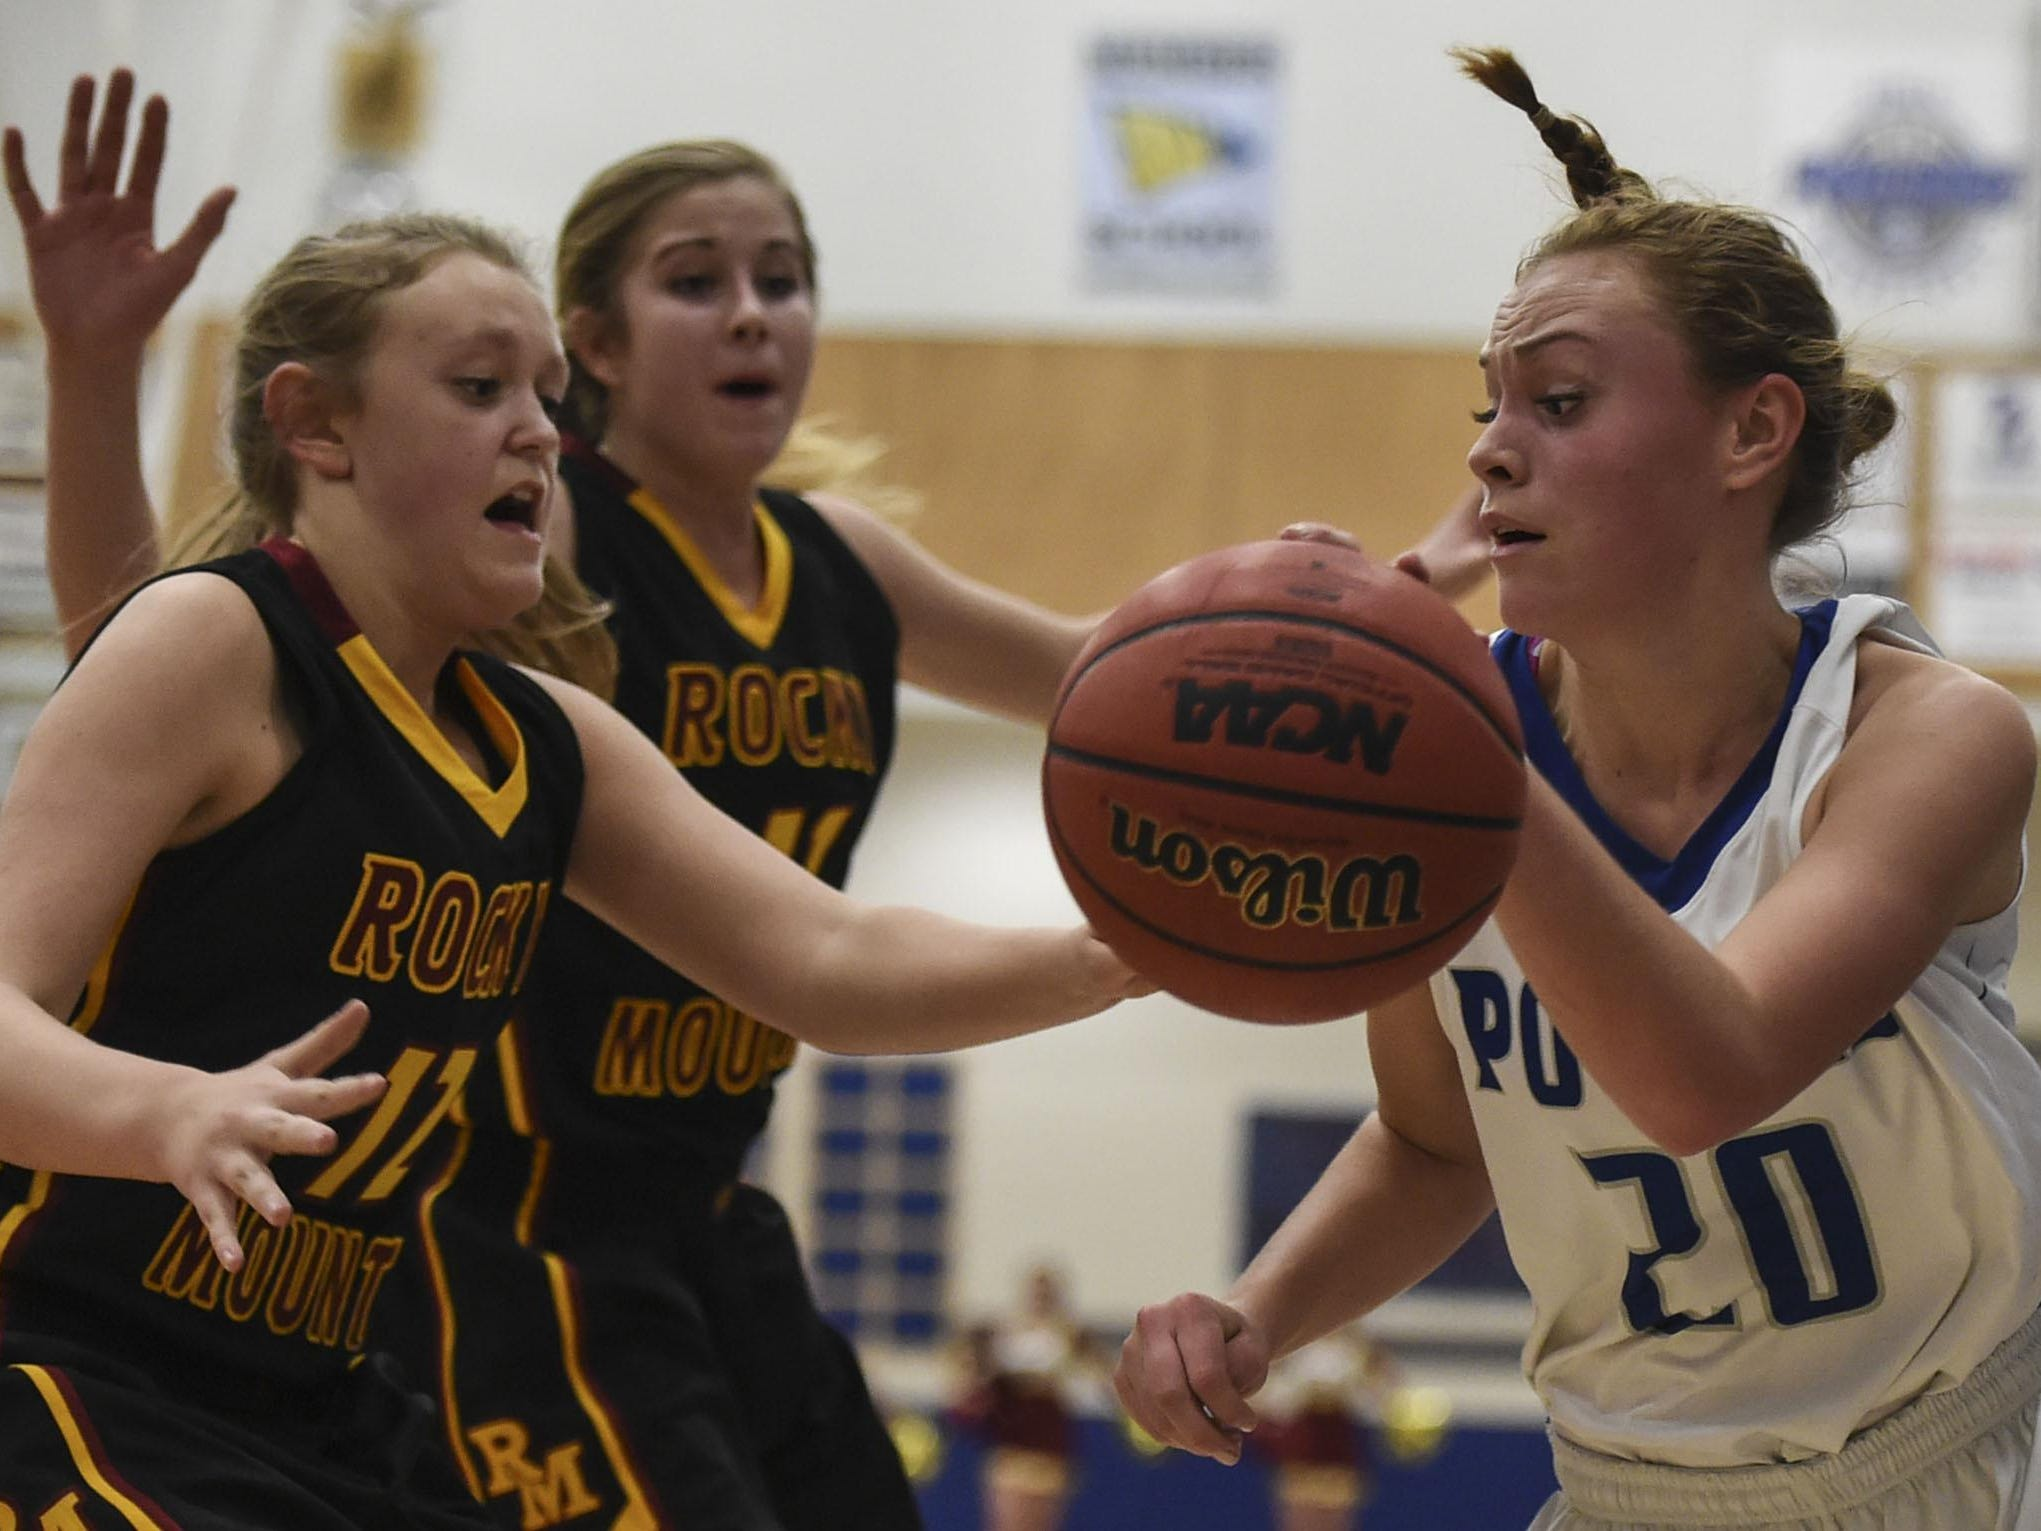 Rocky Mountain is ranked No. 8 in Class 5A and Poudre is No. 9 in the latest AP poll.